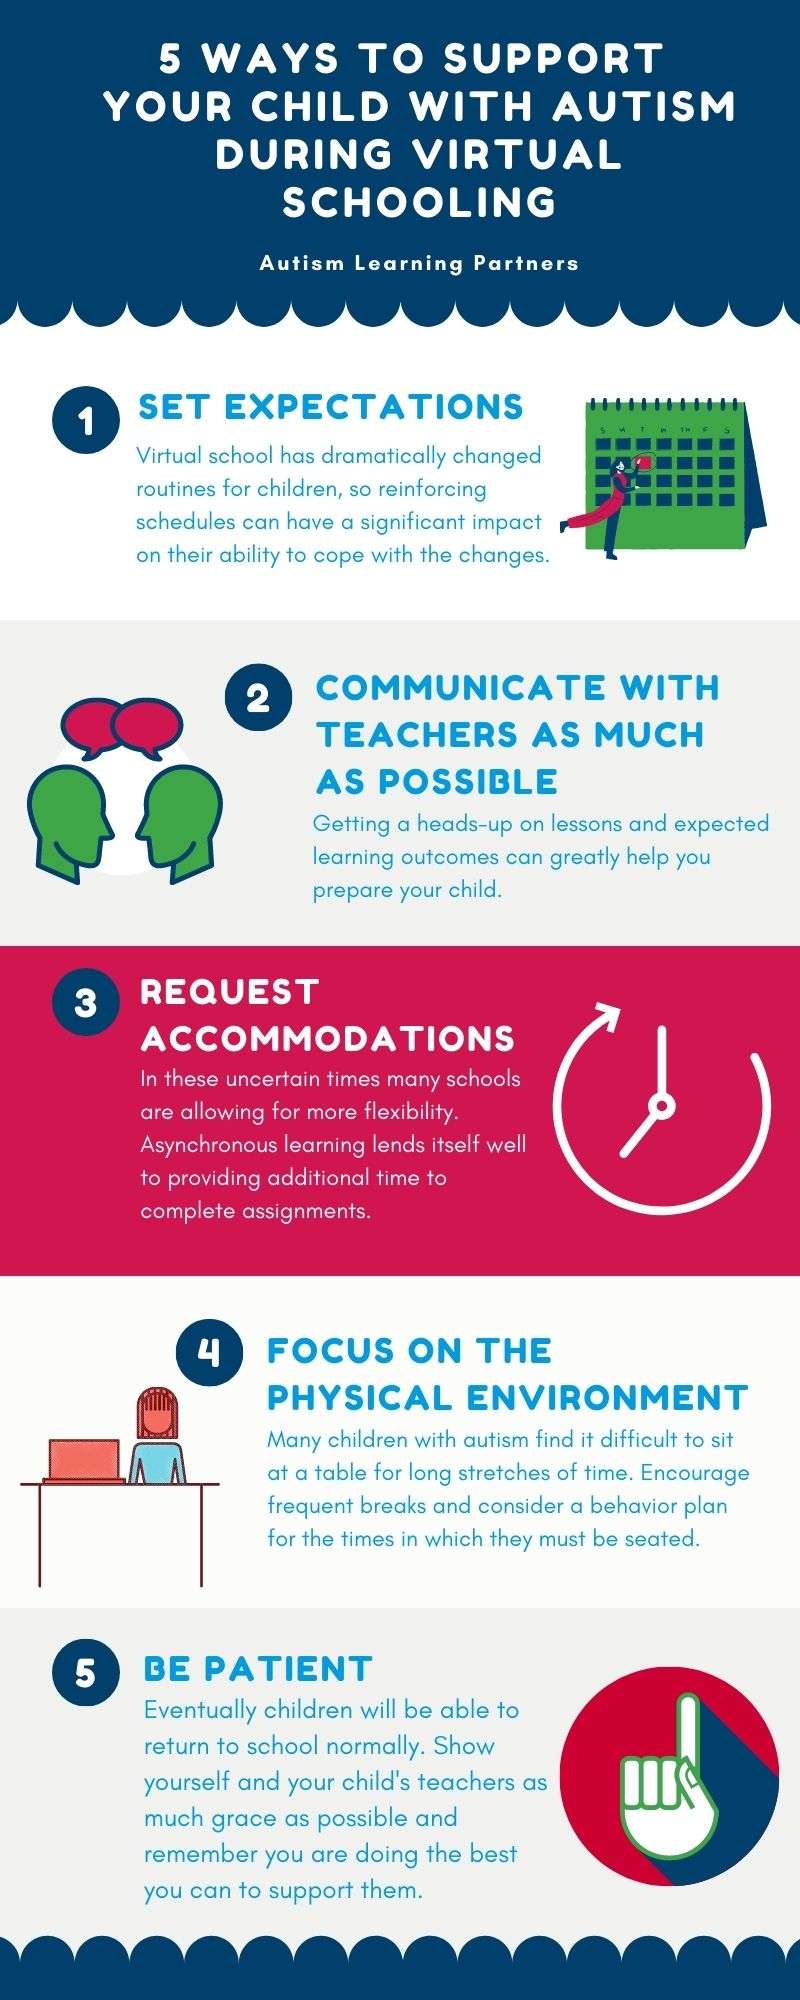 5 Ways To Support Your Child With Autism During Virtual Schooling